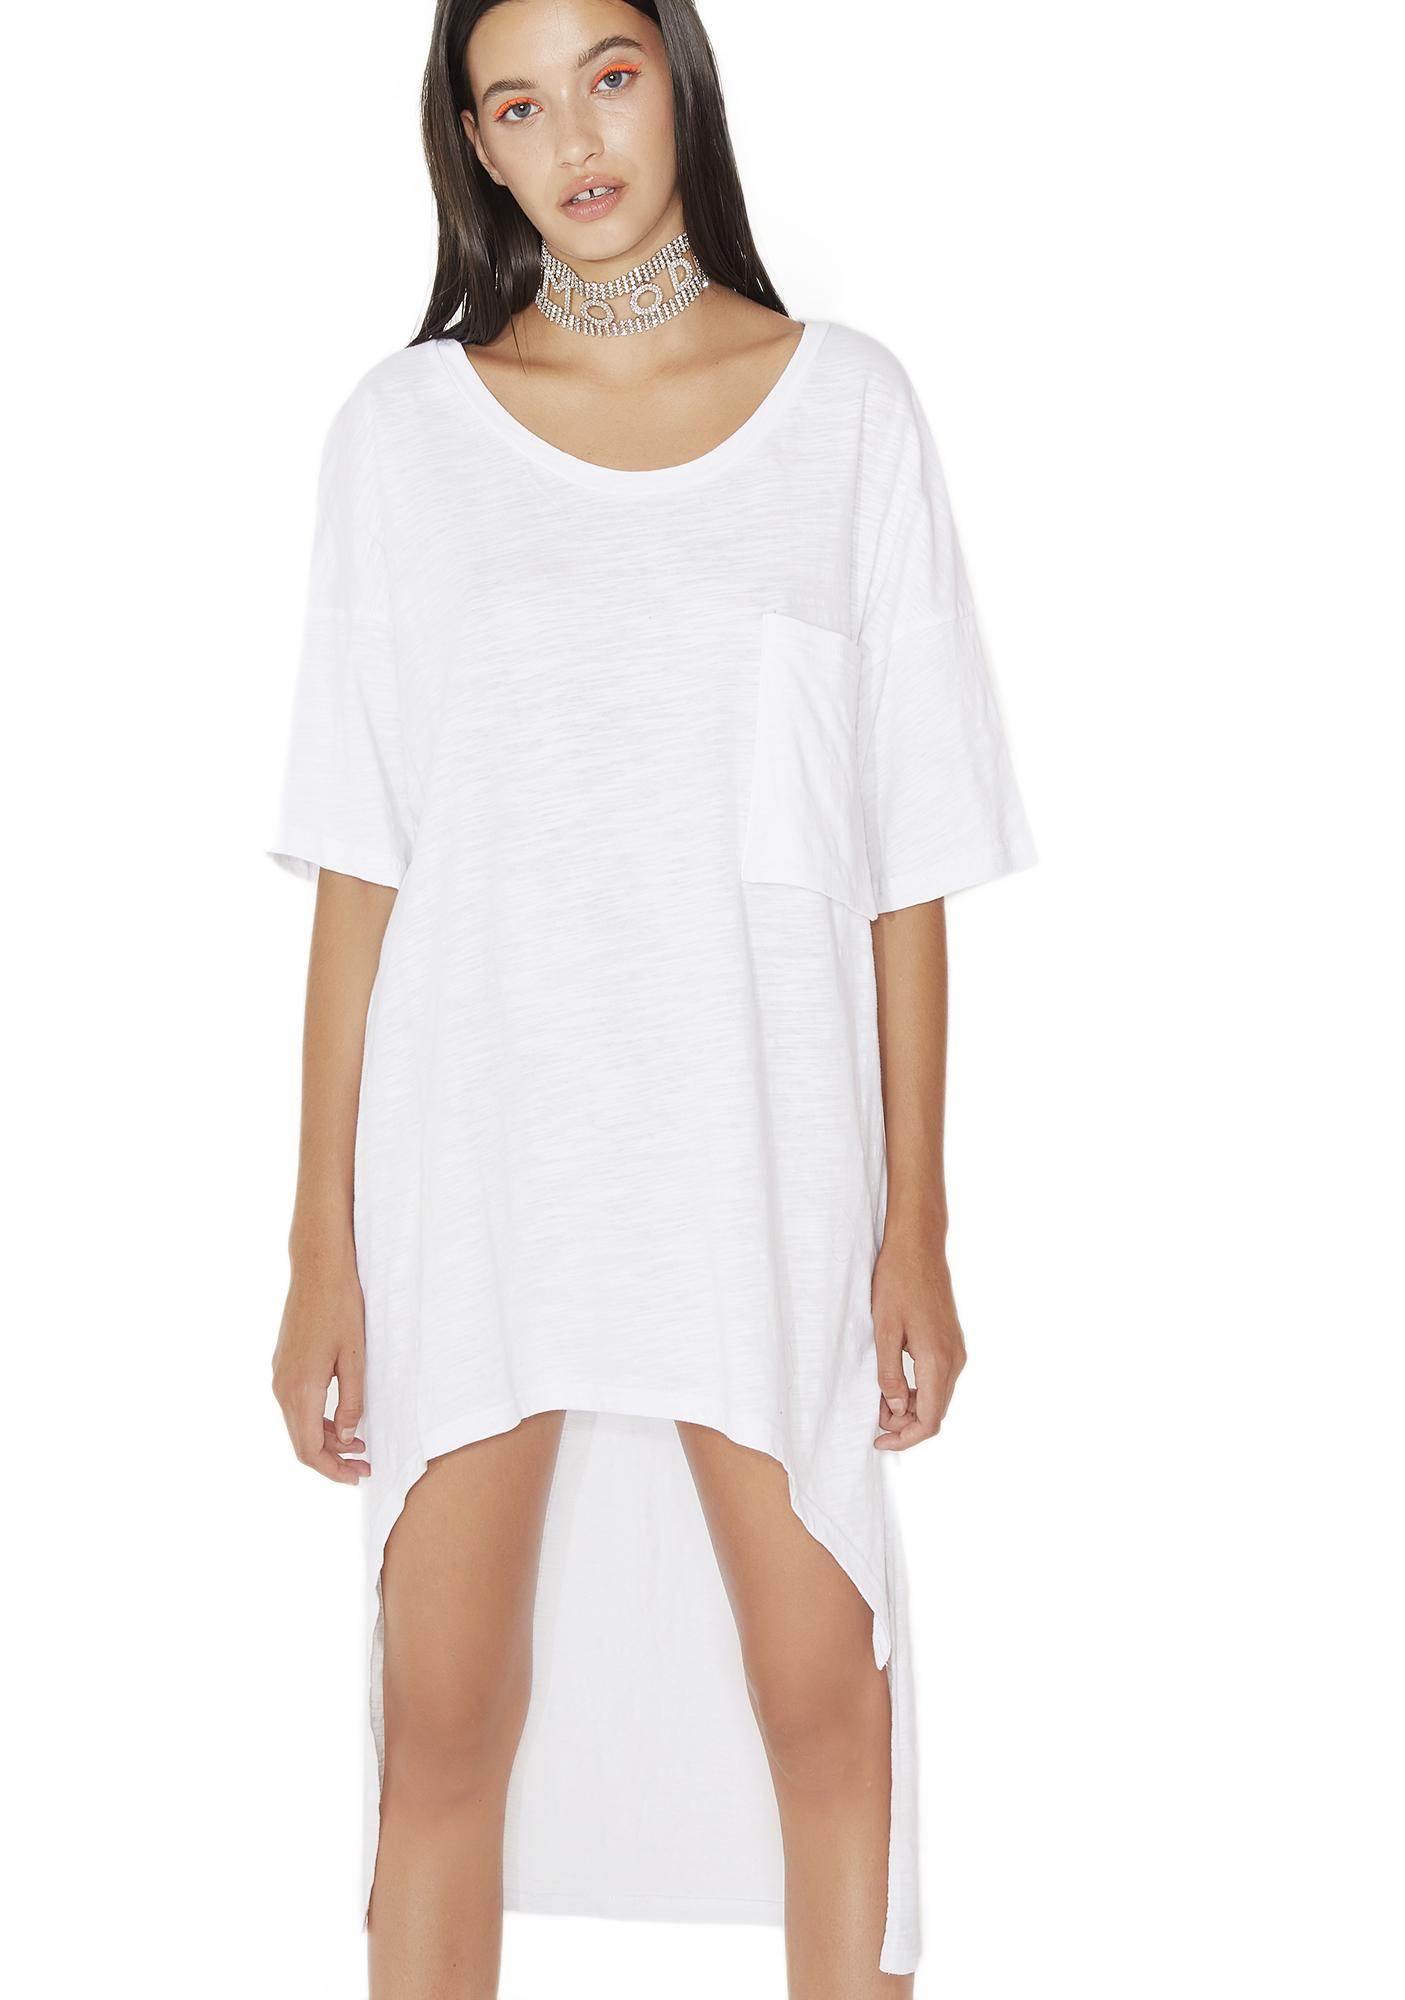 Split Ways T-Shirt Dress